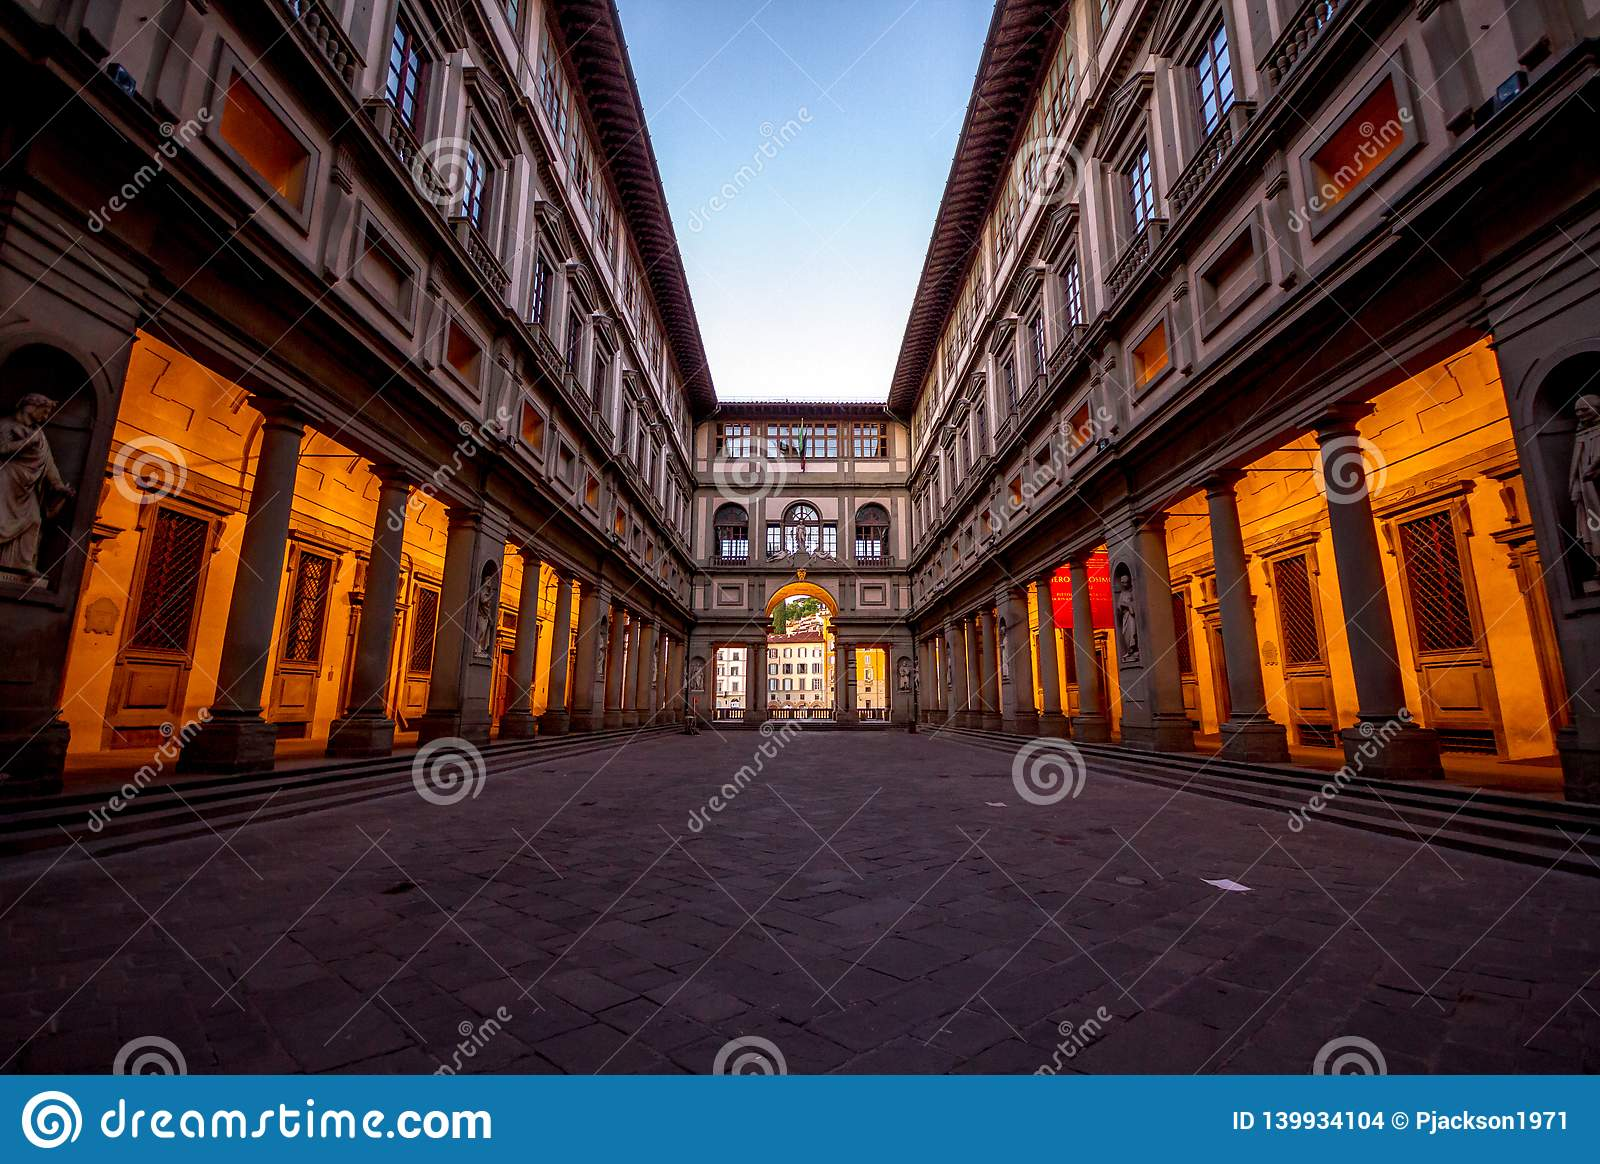 The empty courtyard by the Uffizi Museum in Florence, Italy at sunrise